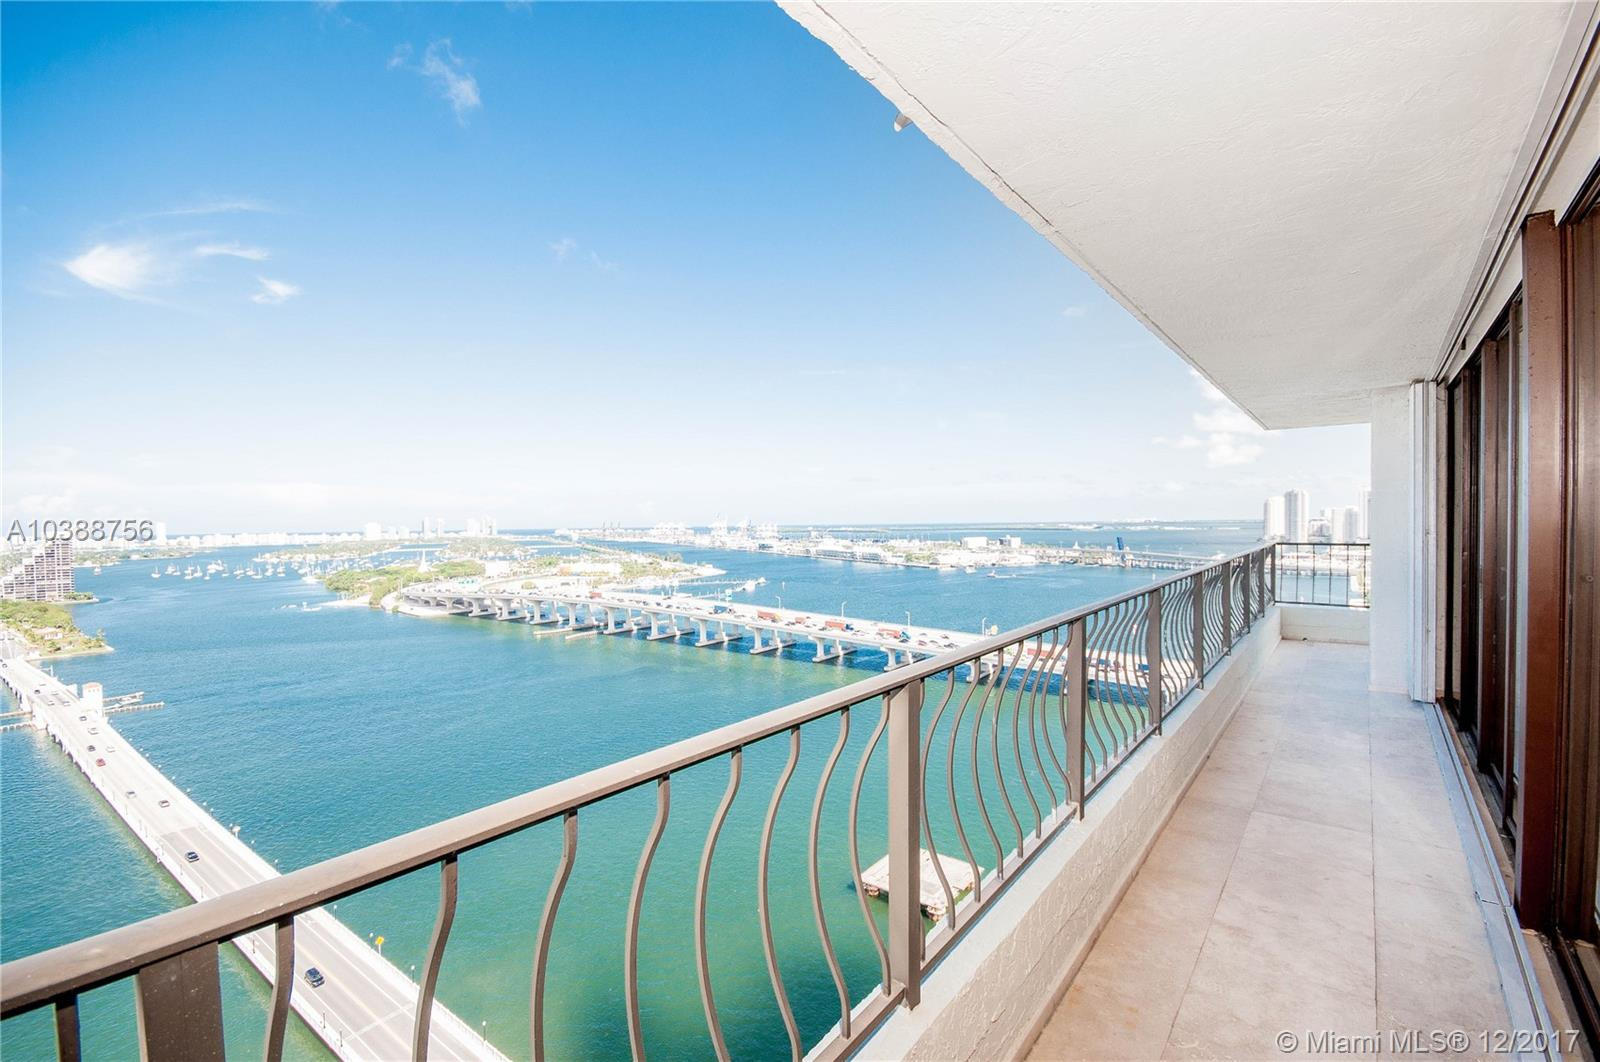 Views For Miles!! This Corner Unit Offers Unobstructed Views Of Biscayne Bay Over The Venetian Islands, Port Of Miami And Even Downtown Miami Skyline. This Rare 2 Bedroom Residence Has A Wrap-Around Balcony With Marble Floors And Updated Kitchen And Bathrooms. Second Bedroom Has Been Opened To Living But Can Be Easily Be Closed. Unit Comes With 2 Parking Spots, Washer/Dryer Inside Unit And Has Bonus Office. Location Makes The Venetia So Desirable, Steps From Pamm, Frost Museum, Arsht Center For The Performing Arts, American Airlines, People Mover Station, Trolley Into Downtown Miami, Bayfront Park. This Is The Heart Of The A&E District With Spectacular Views - Miami Lifestyle At Its Best!